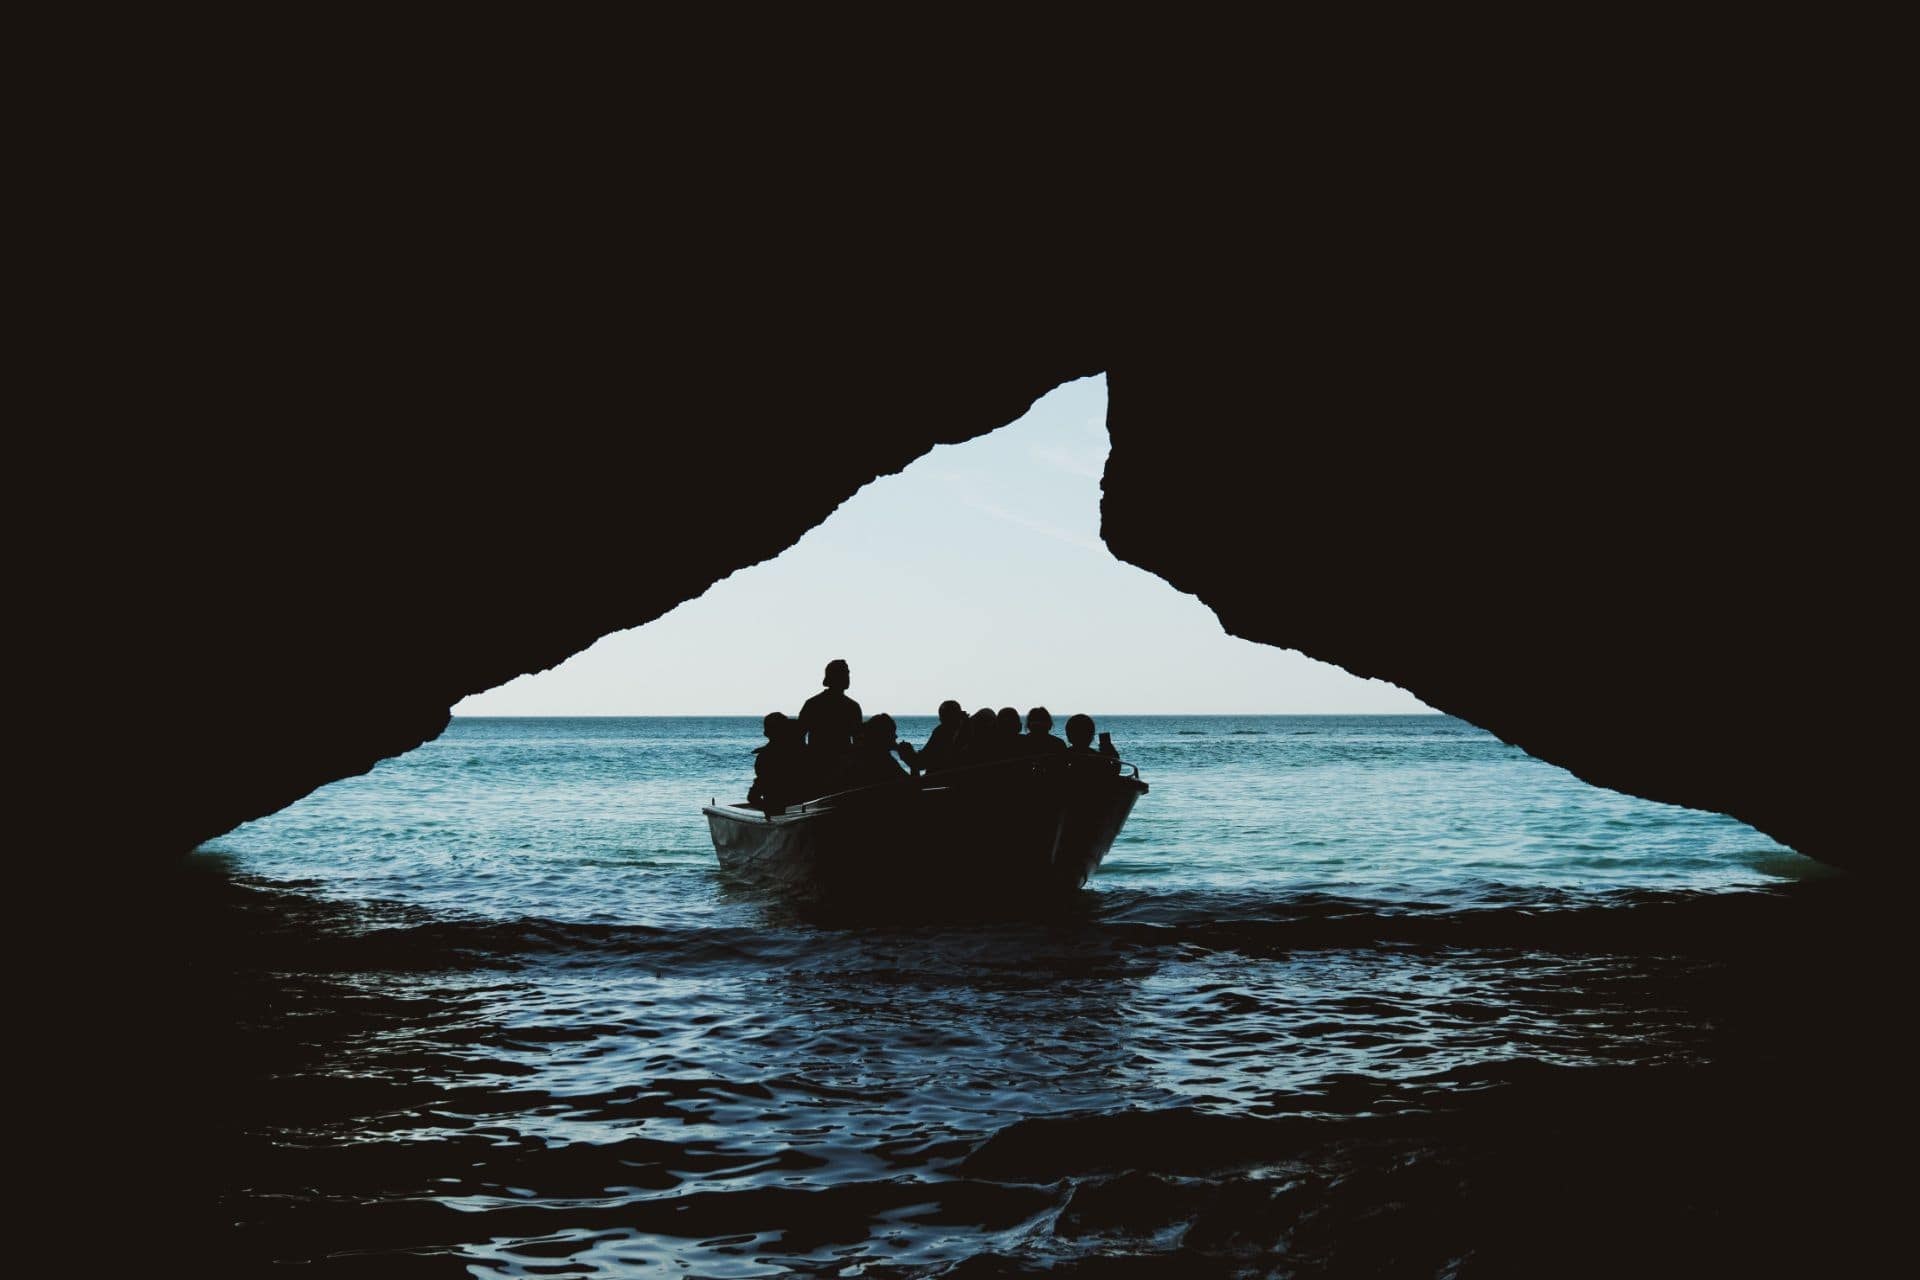 silhouette-of-a-boat-filled-with-people-on-the-water-pulling-into-a-cave